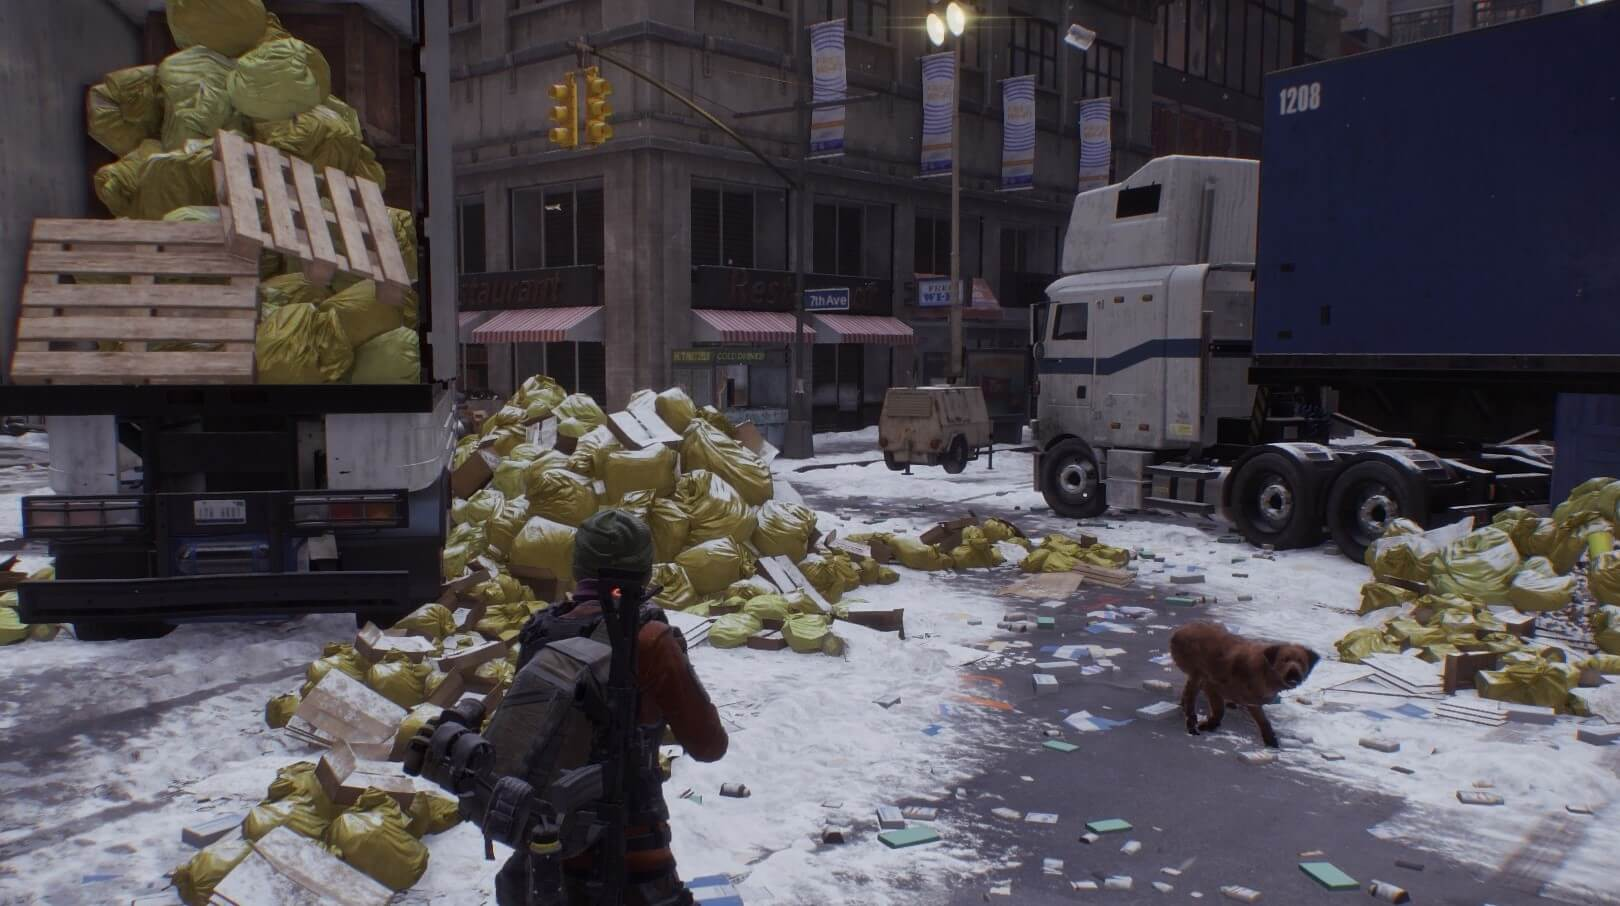 The Division: Delta-Fehler 20010186 – Was tun?